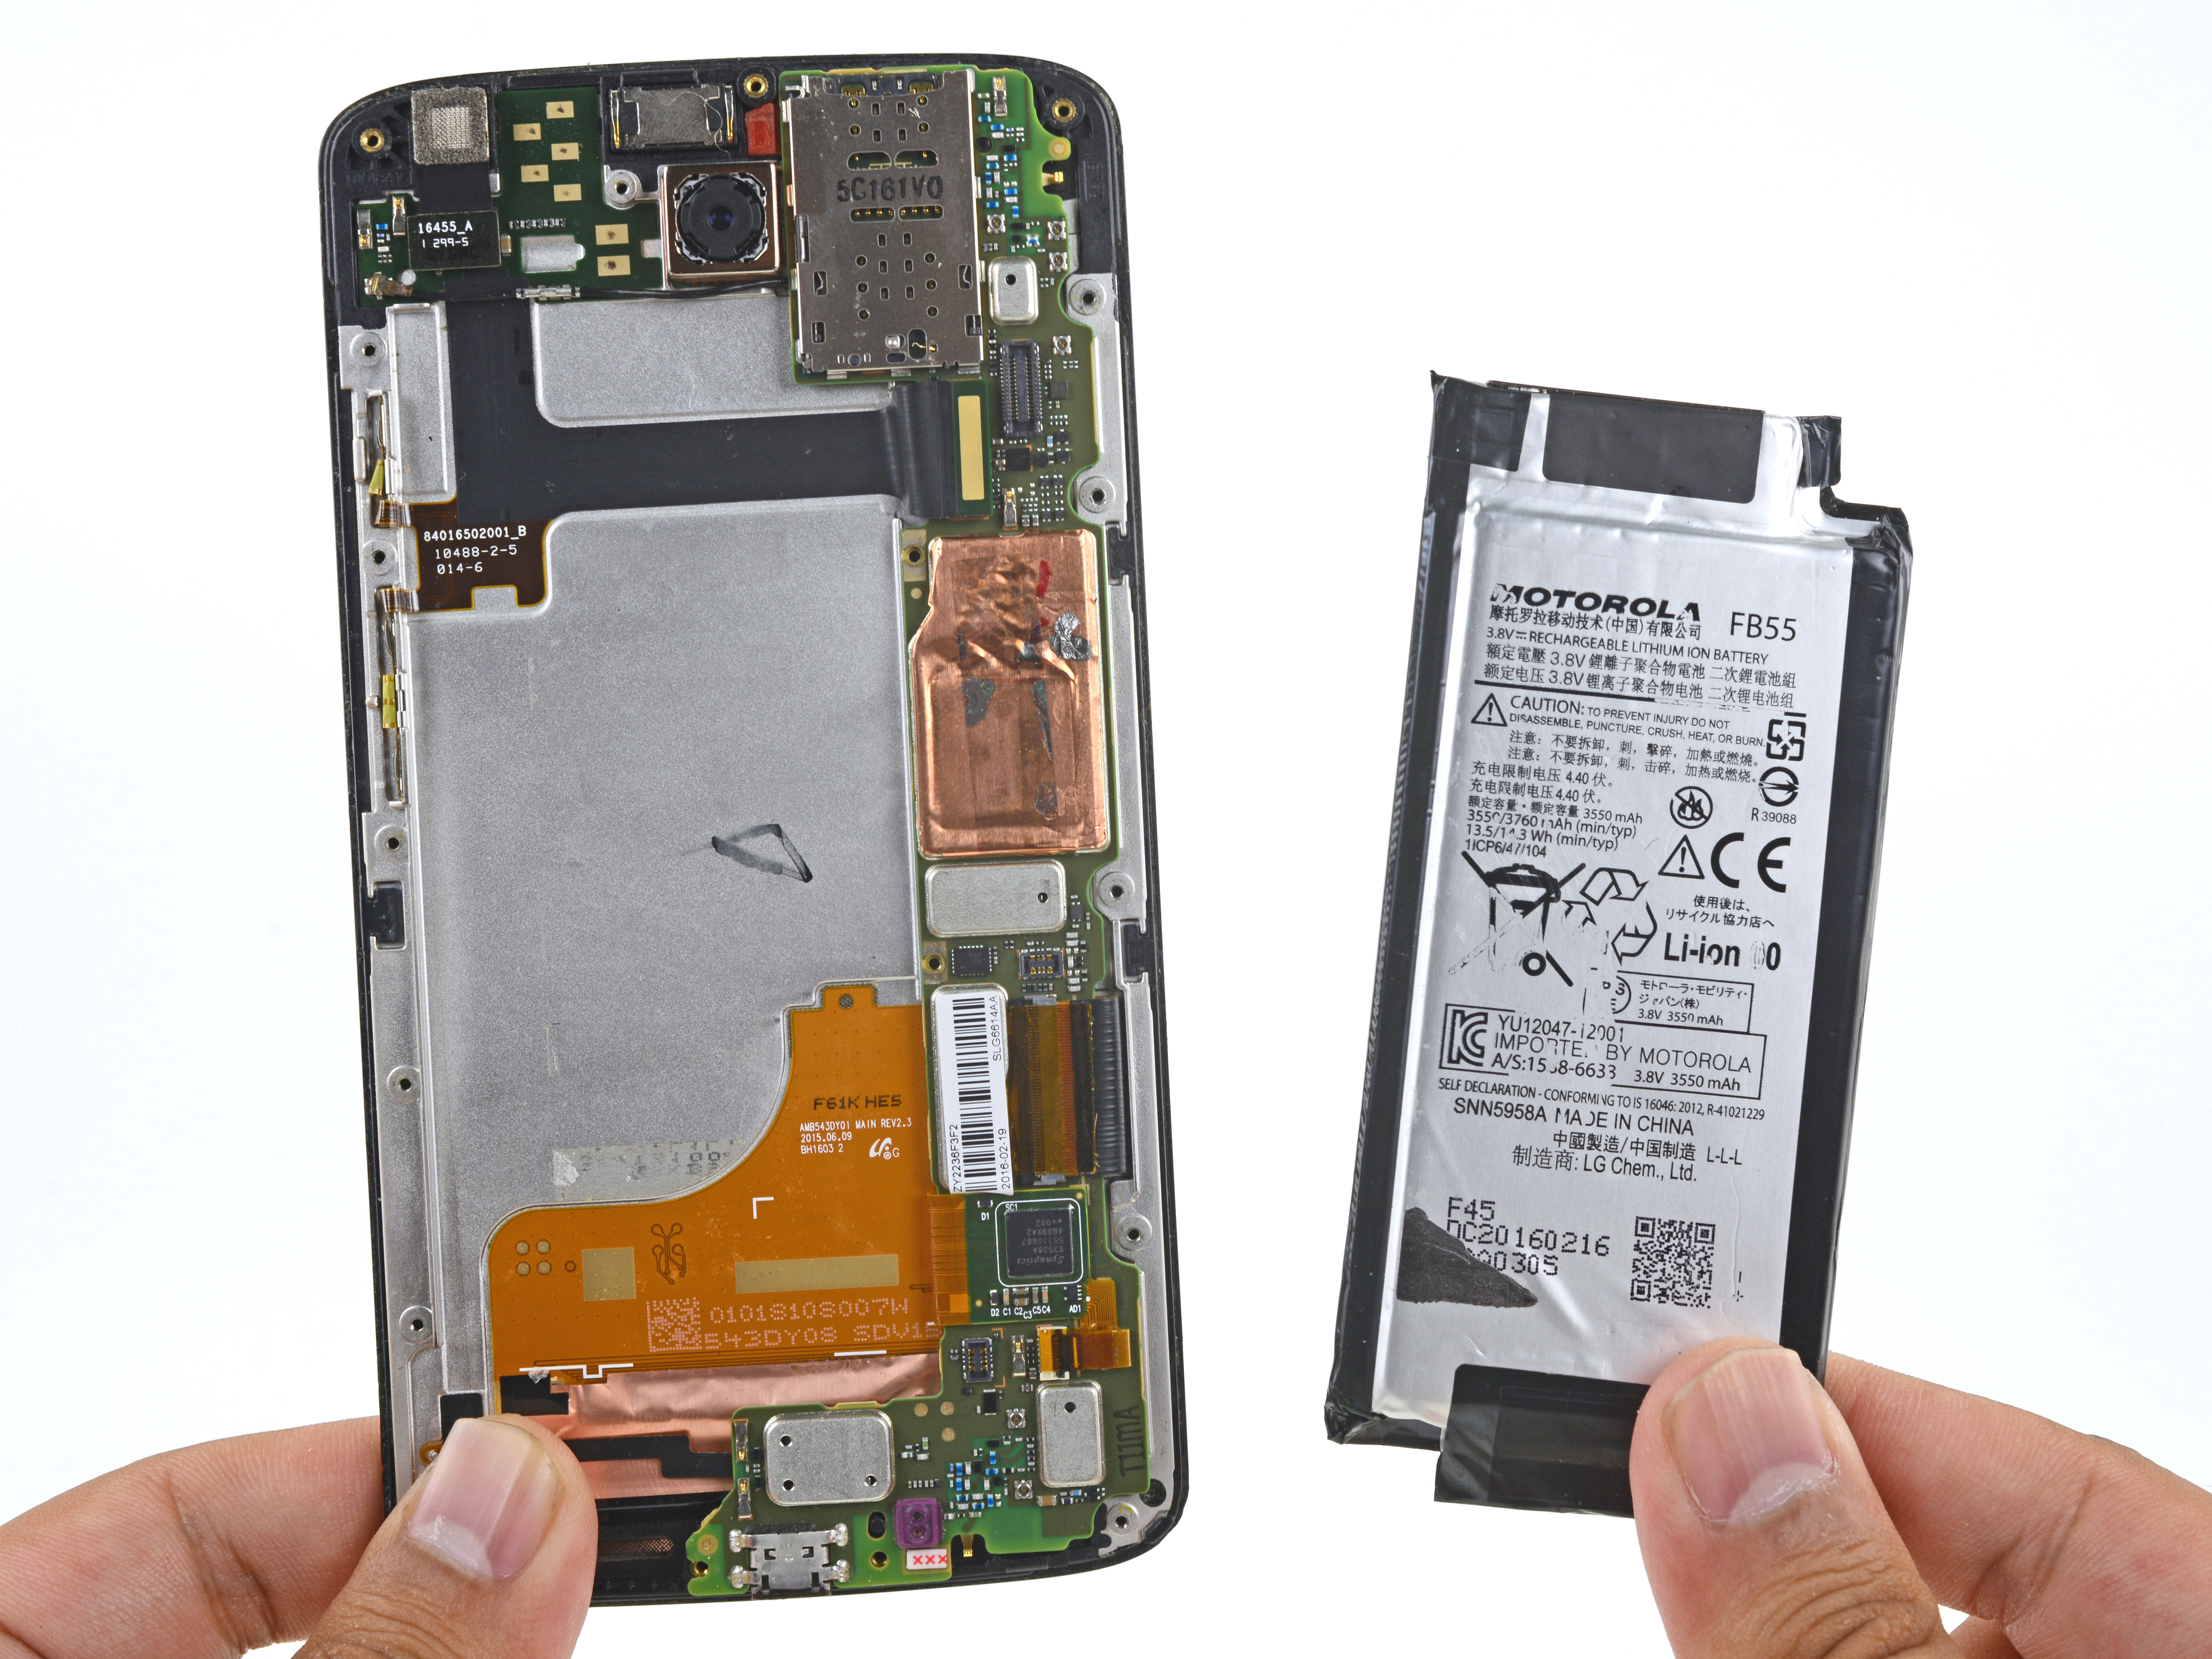 Motorola Droid Turbo 2 Battery Replacement Ifixit Repair Guide Half Hot Outlets Sources 1 Switch Electrical Diy Chatroom